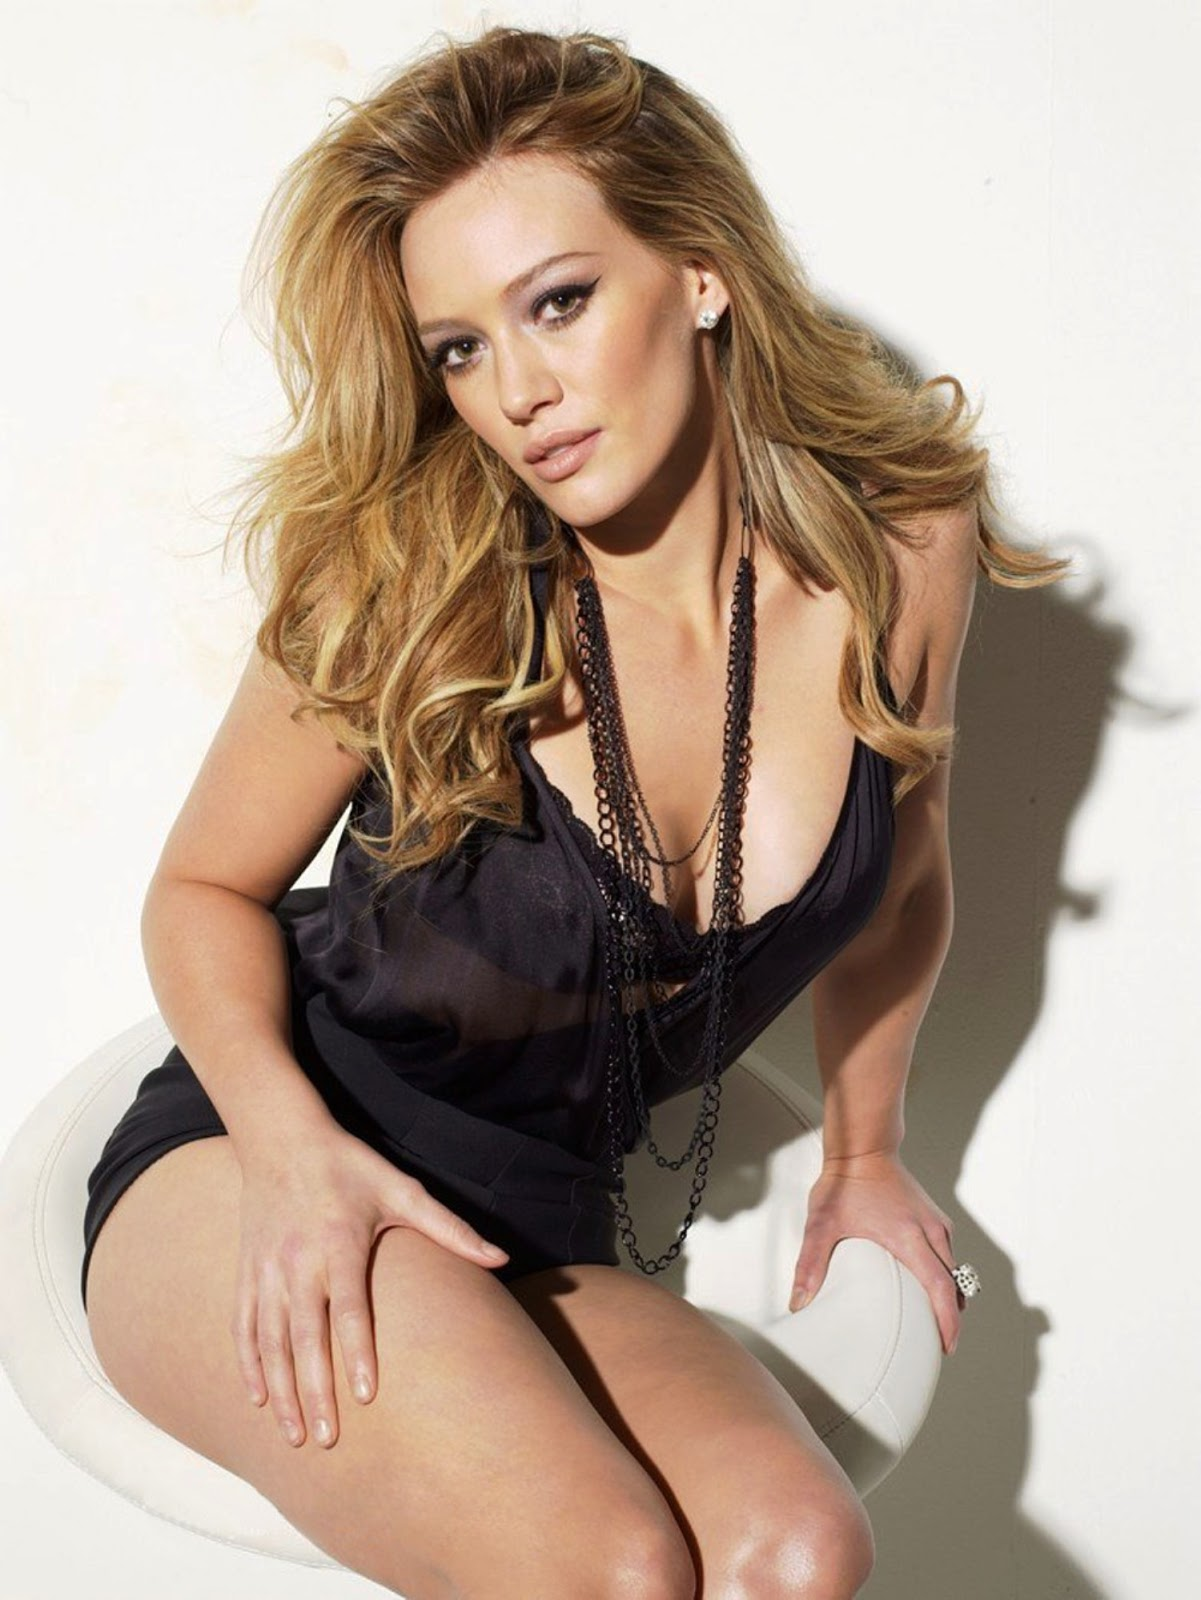 Hilary duff hot talk this